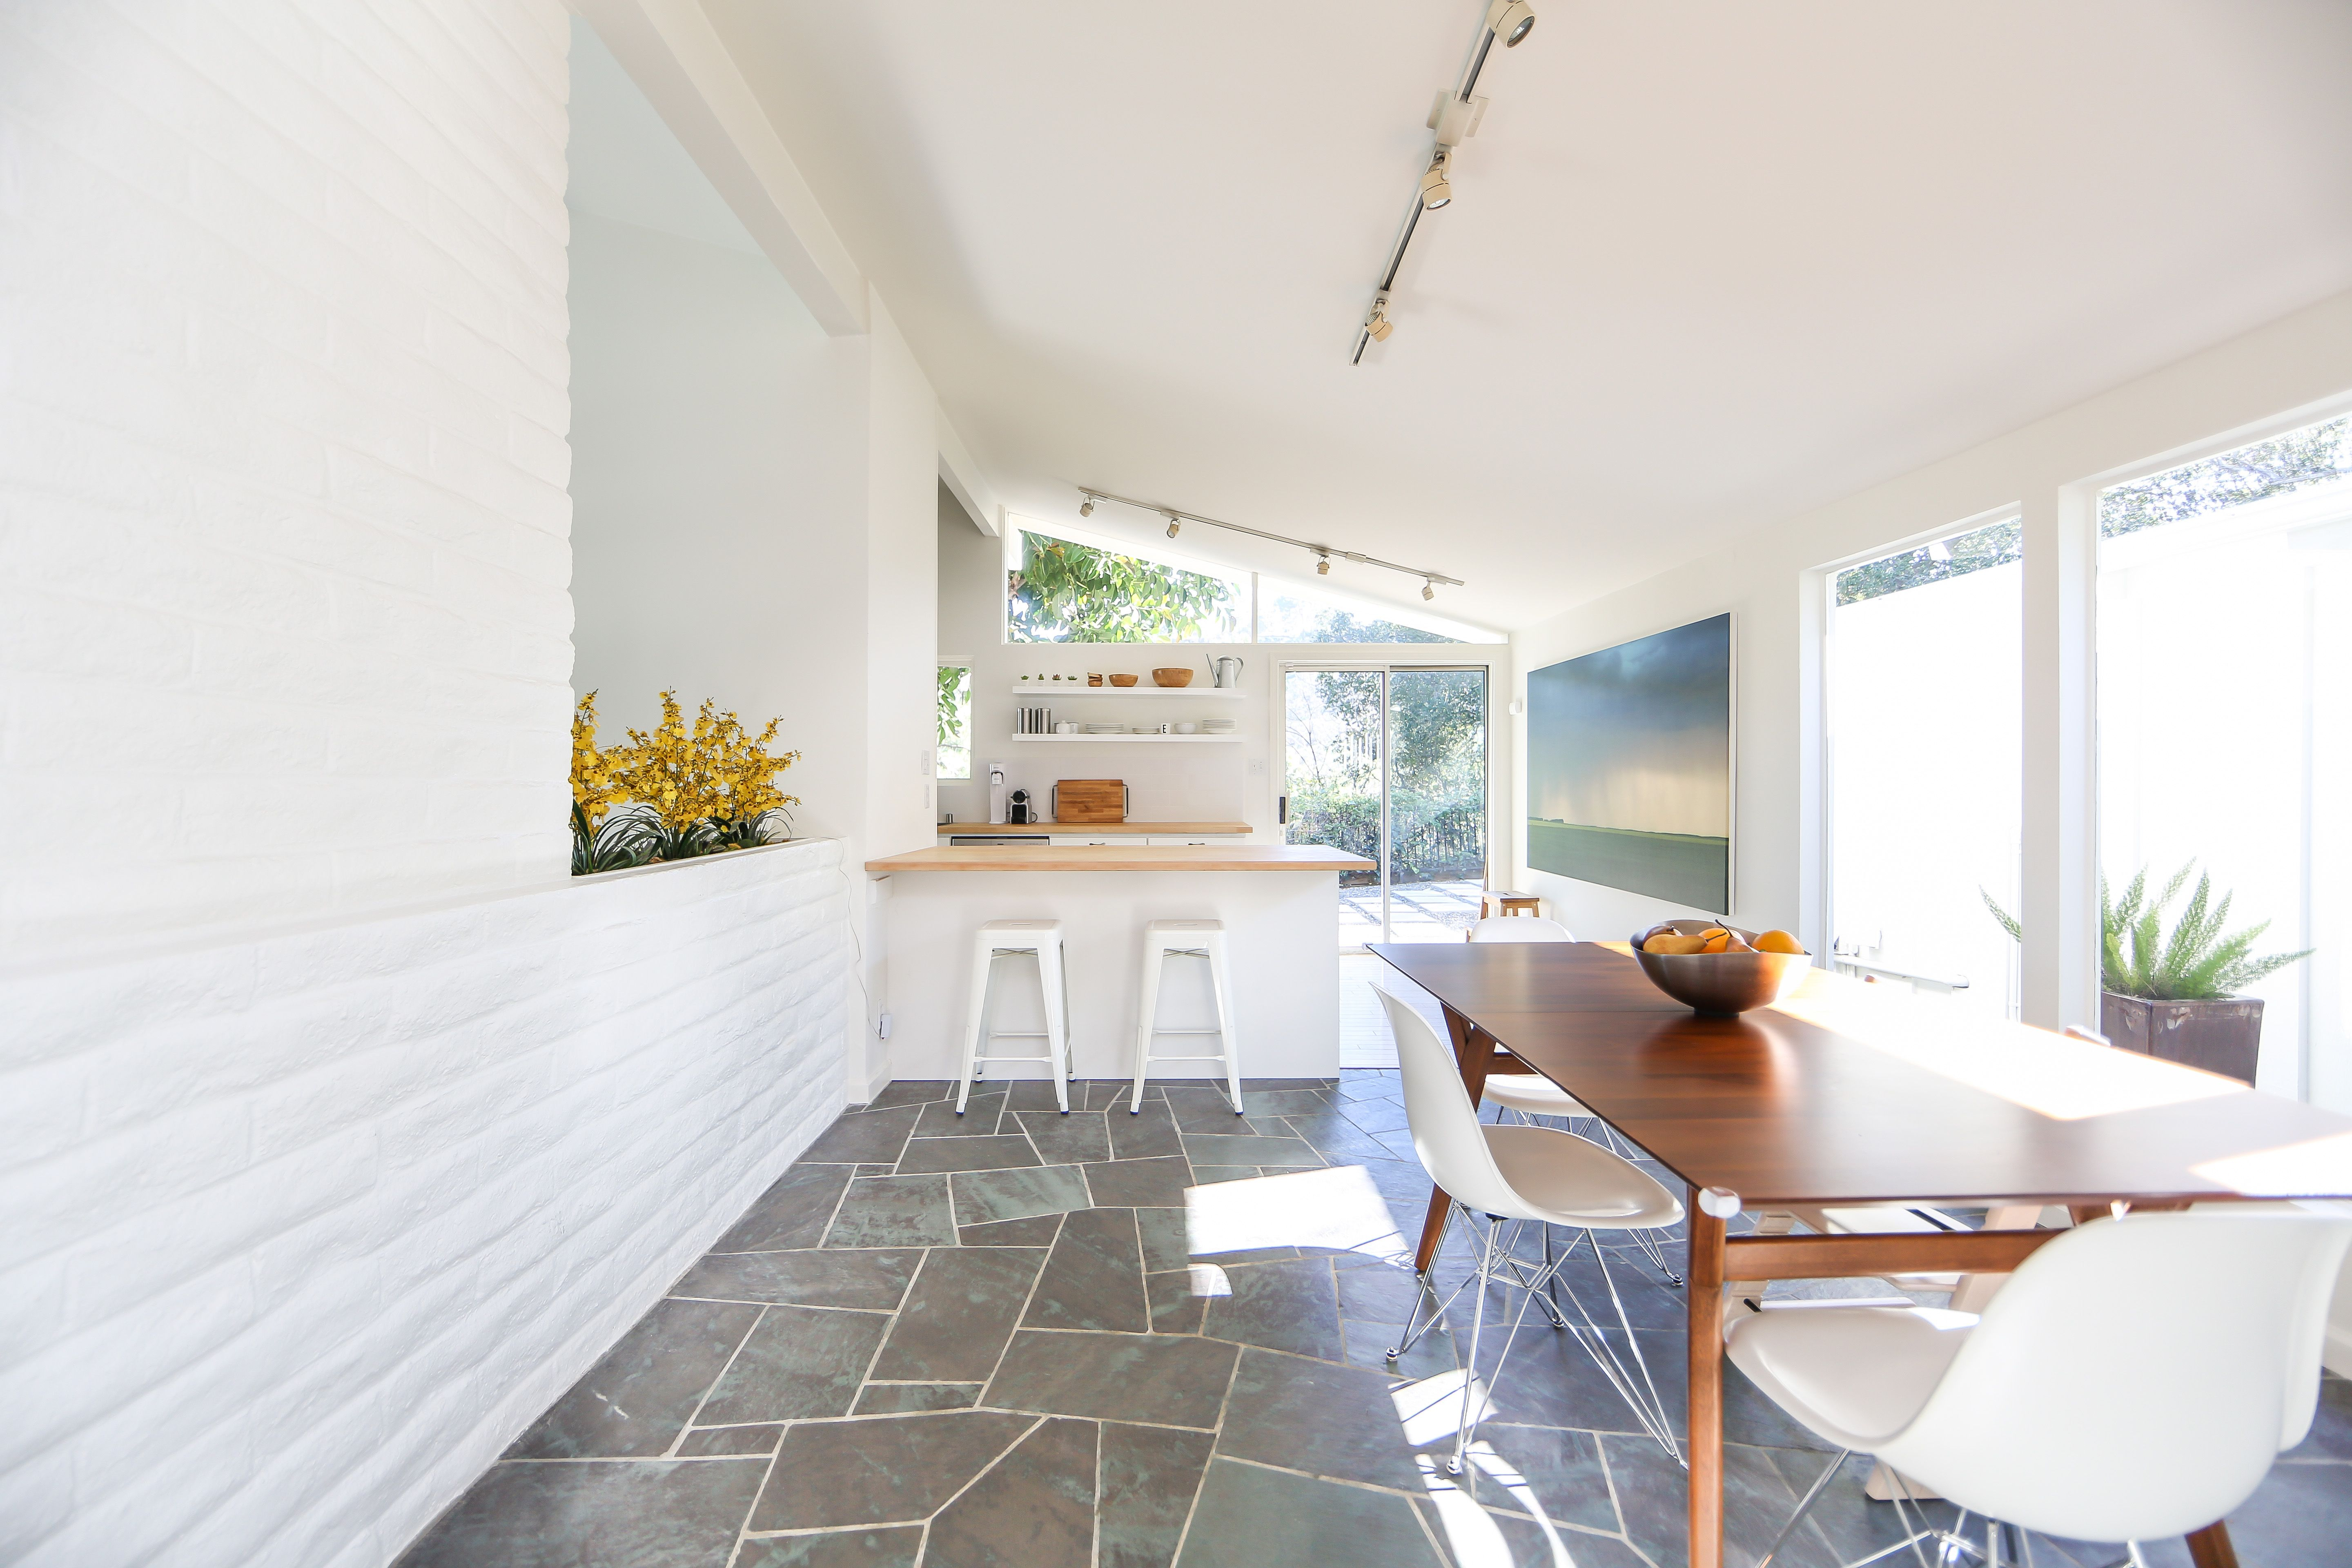 Photo 4 of 10 in If You Crave Bright, Light-Filled Spaces, This ...